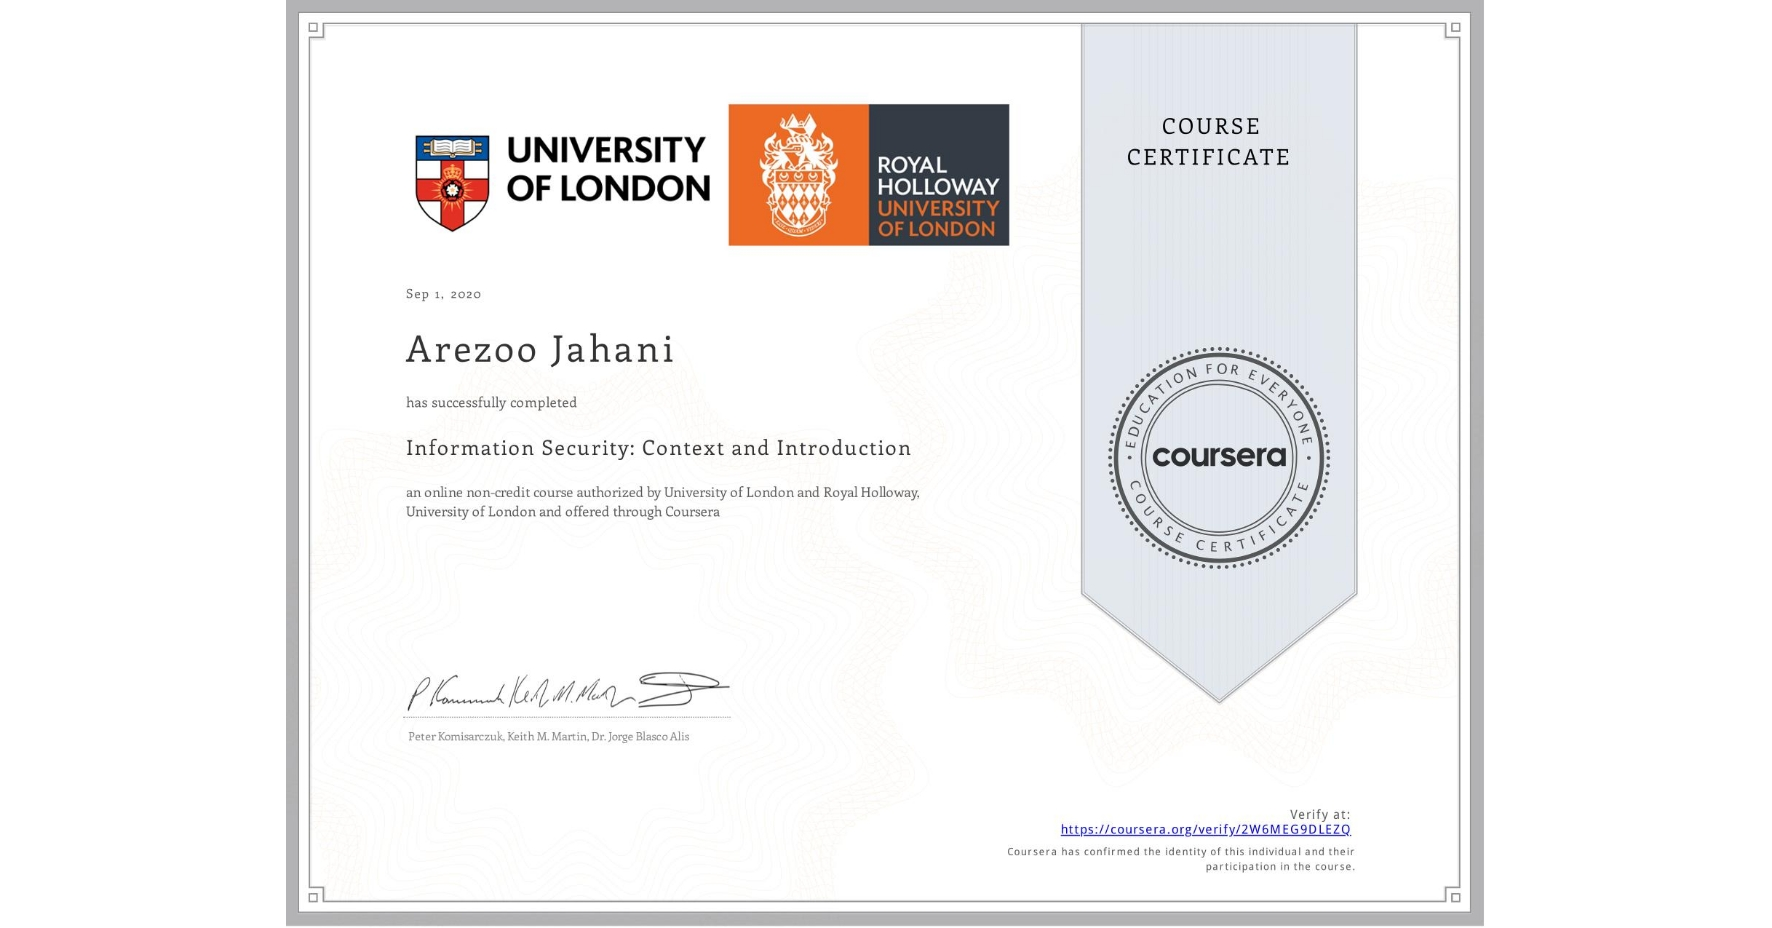 View certificate for Arezoo Jahani, Information Security: Context and Introduction, an online non-credit course authorized by University of London & Royal Holloway, University of London and offered through Coursera